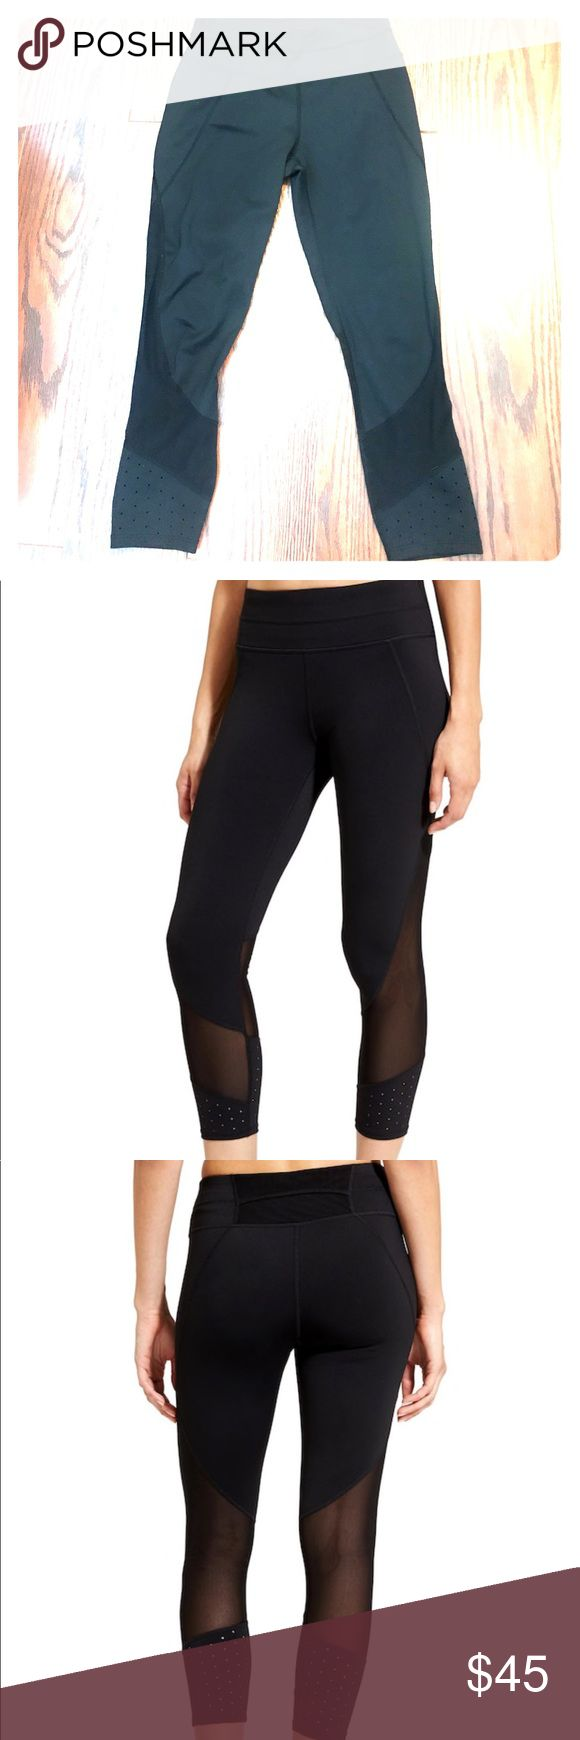 Athleta Laser Mesh Sonar Tight Lightly worn, super sleek, wicking compression capri with a beyond-flattering fit and laser-cut mesh ventilation for your every run and training session. INSPIRED FOR: gym/training, run, studio workouts Ultra-comfortable wide waistband, hidden key pocket, rear mesh-lined pocket NEVEREND DRAWSTRING. Fully adjustable continuous loop never gets lost in the wash Laser-cut mesh ventilation at lower leg lets sweat escape, minimal seams reduce chafe Breathable…